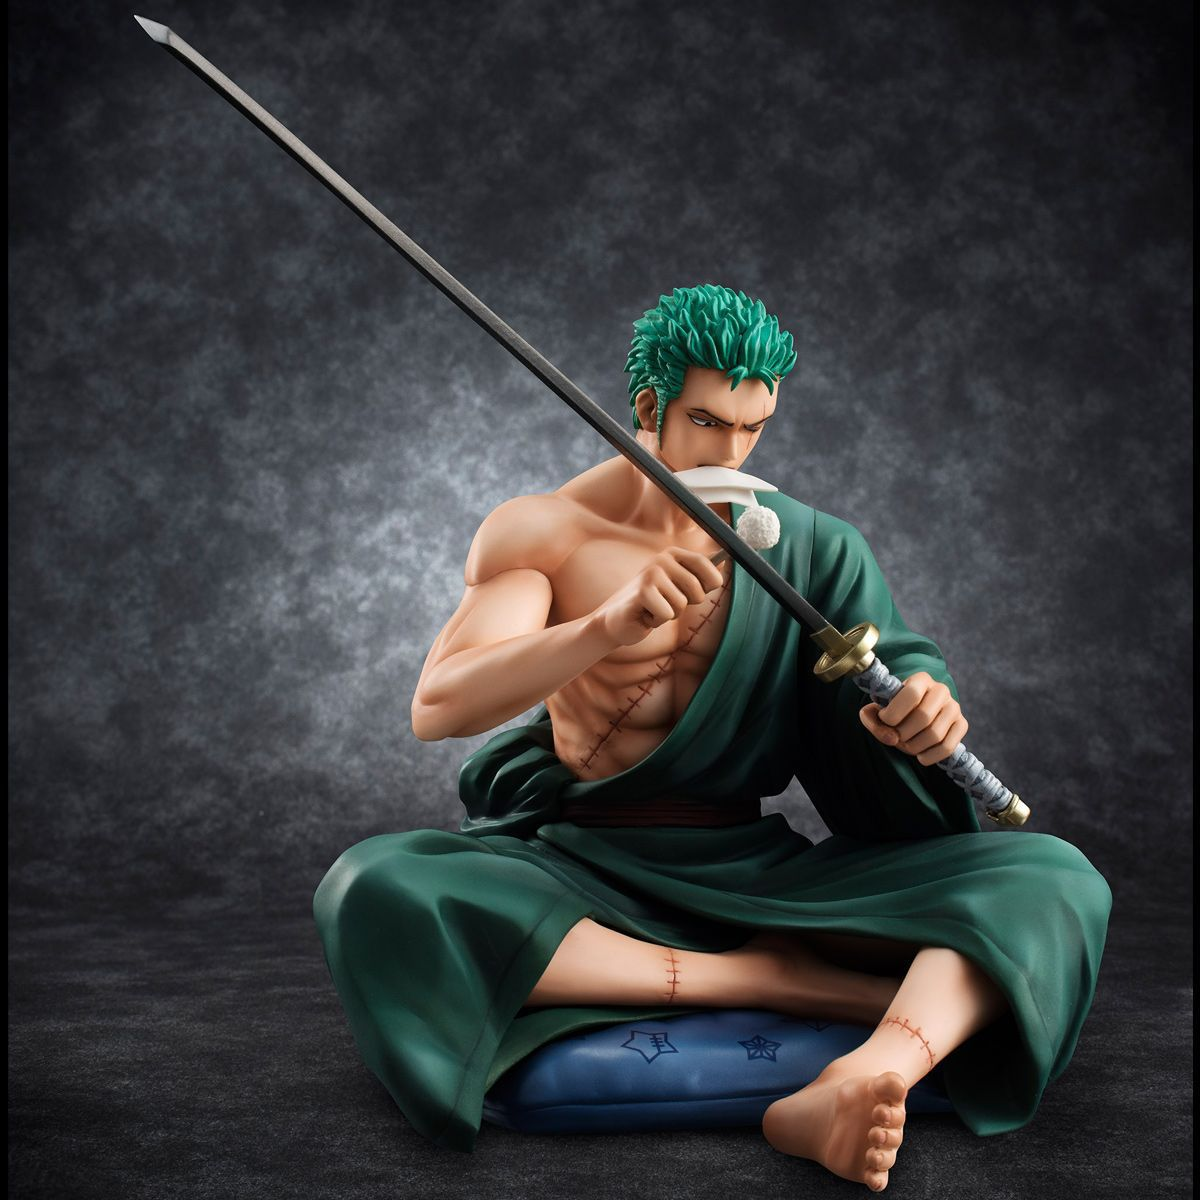 WVW 13CM Hot Sale Anime One Piece New World Roronoa Zoro Model PVC Toy Action Figure Decoration For Collection Gift new hot christmas gift 21inch 52cm bearbrick be rbrick fashion toy pvc action figure collectible model toy decoration